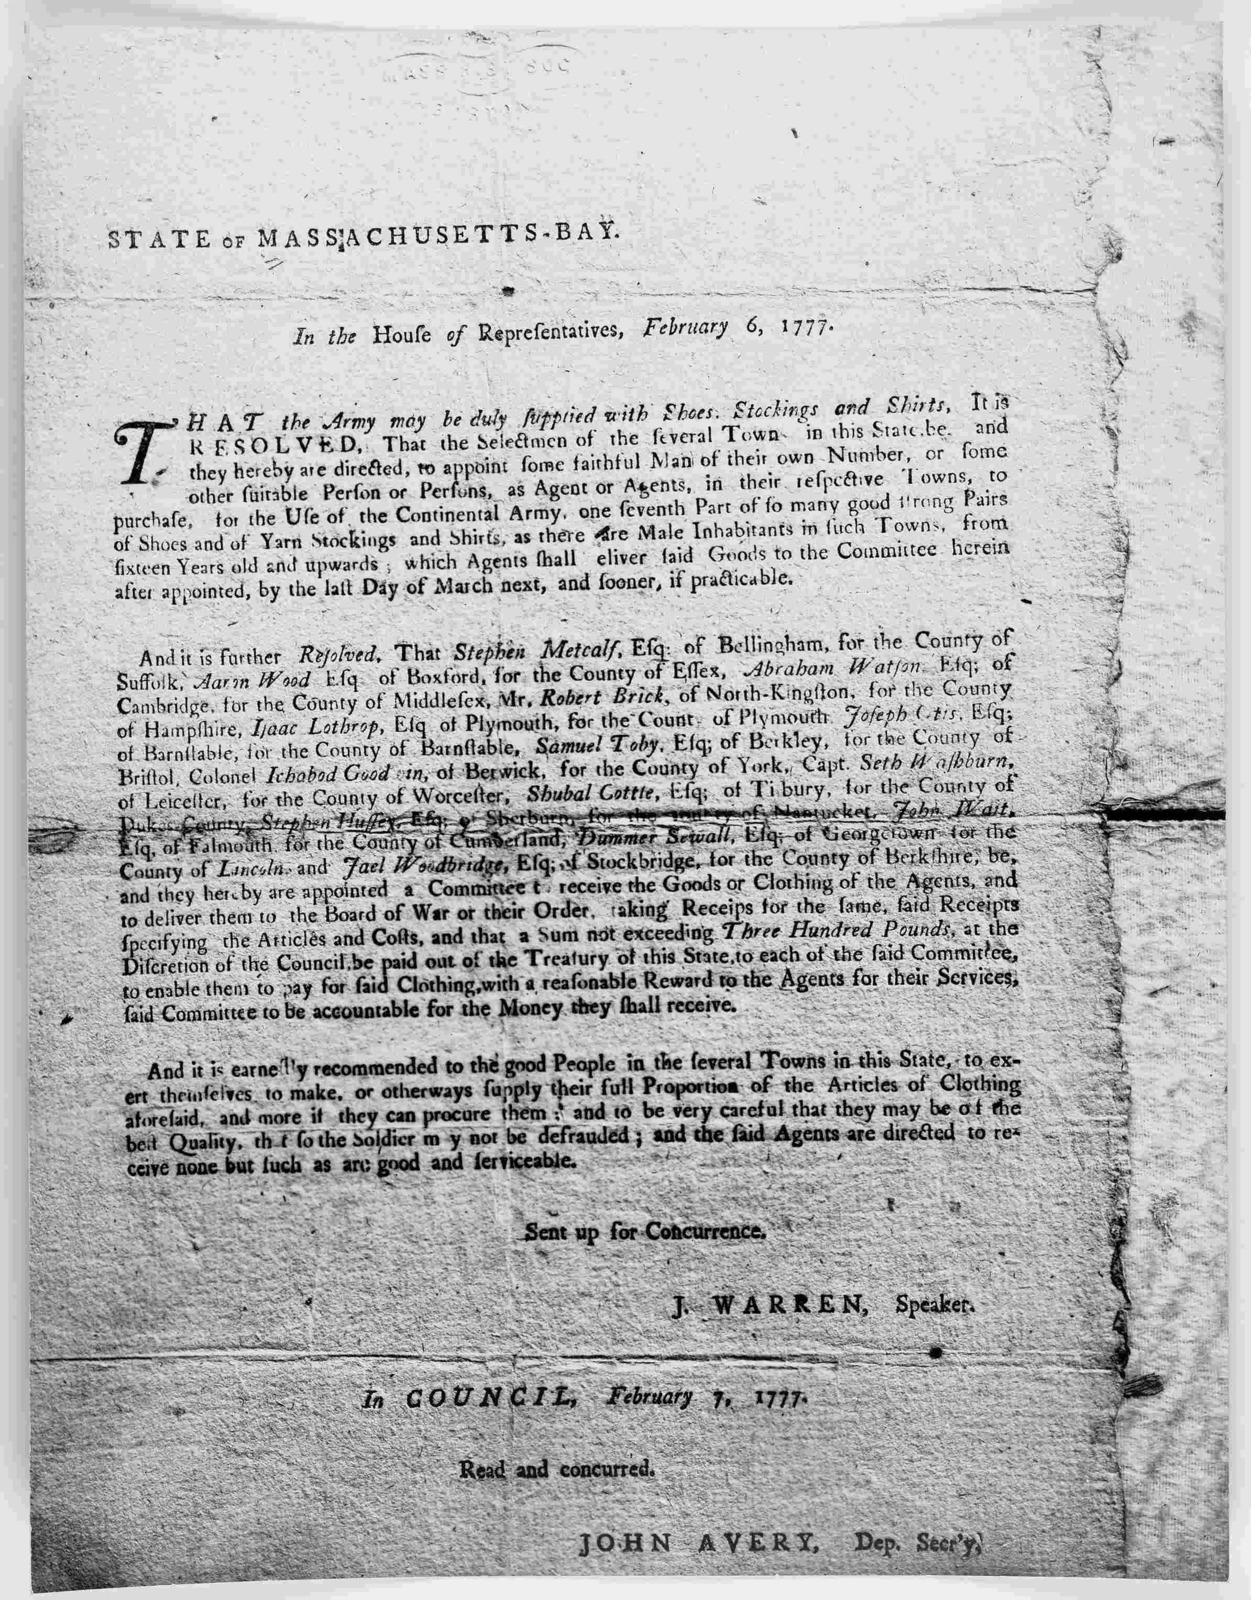 State of Massachusetts-Bay. In the House of representatives. February 6, 1777. That the army may be duly supplied with shoes, stockings and shirts ... [Boston: Printed by Benjamin Edes, 1777].